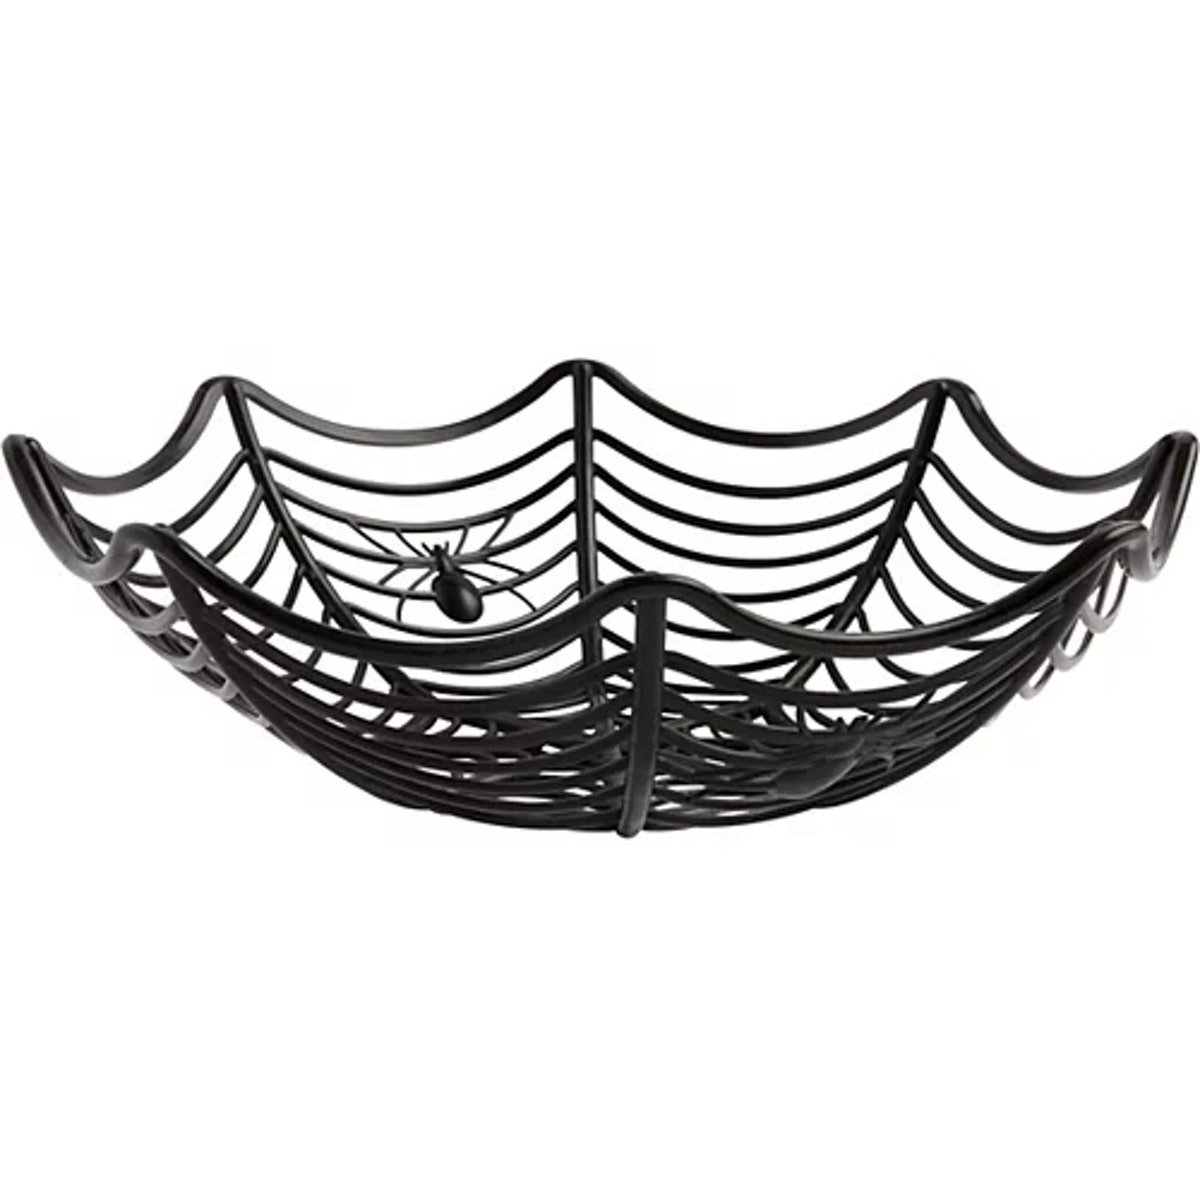 Spider Web Candy Bowl